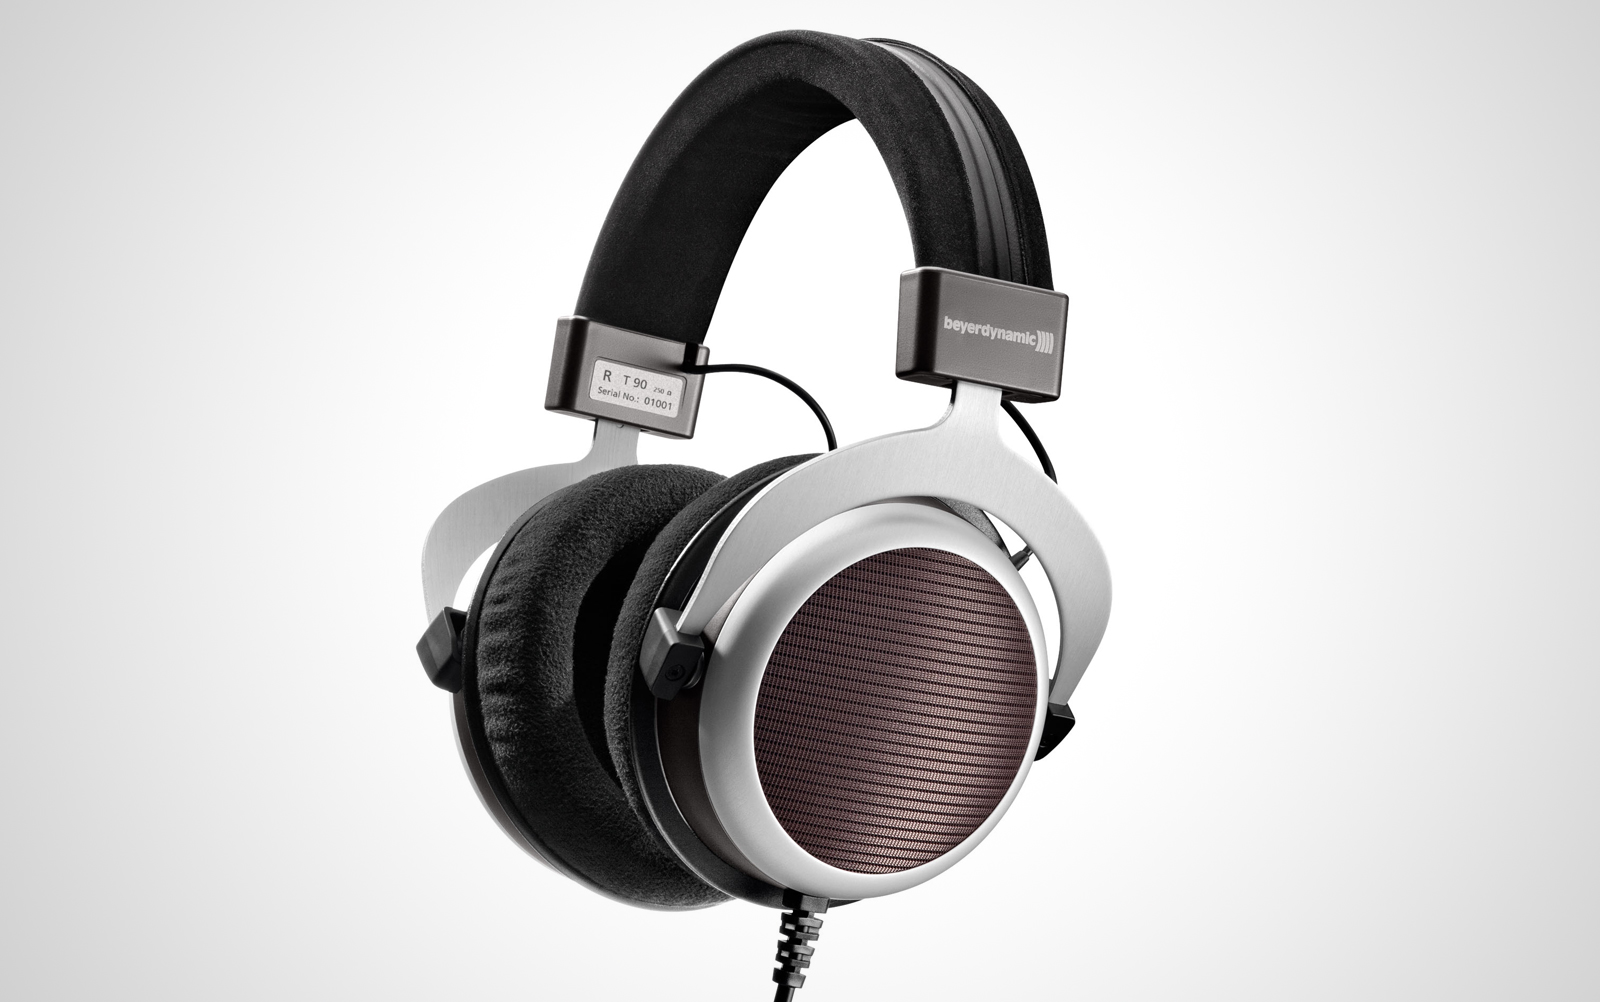 Beyerdynamic-T90-250-Ohm_01